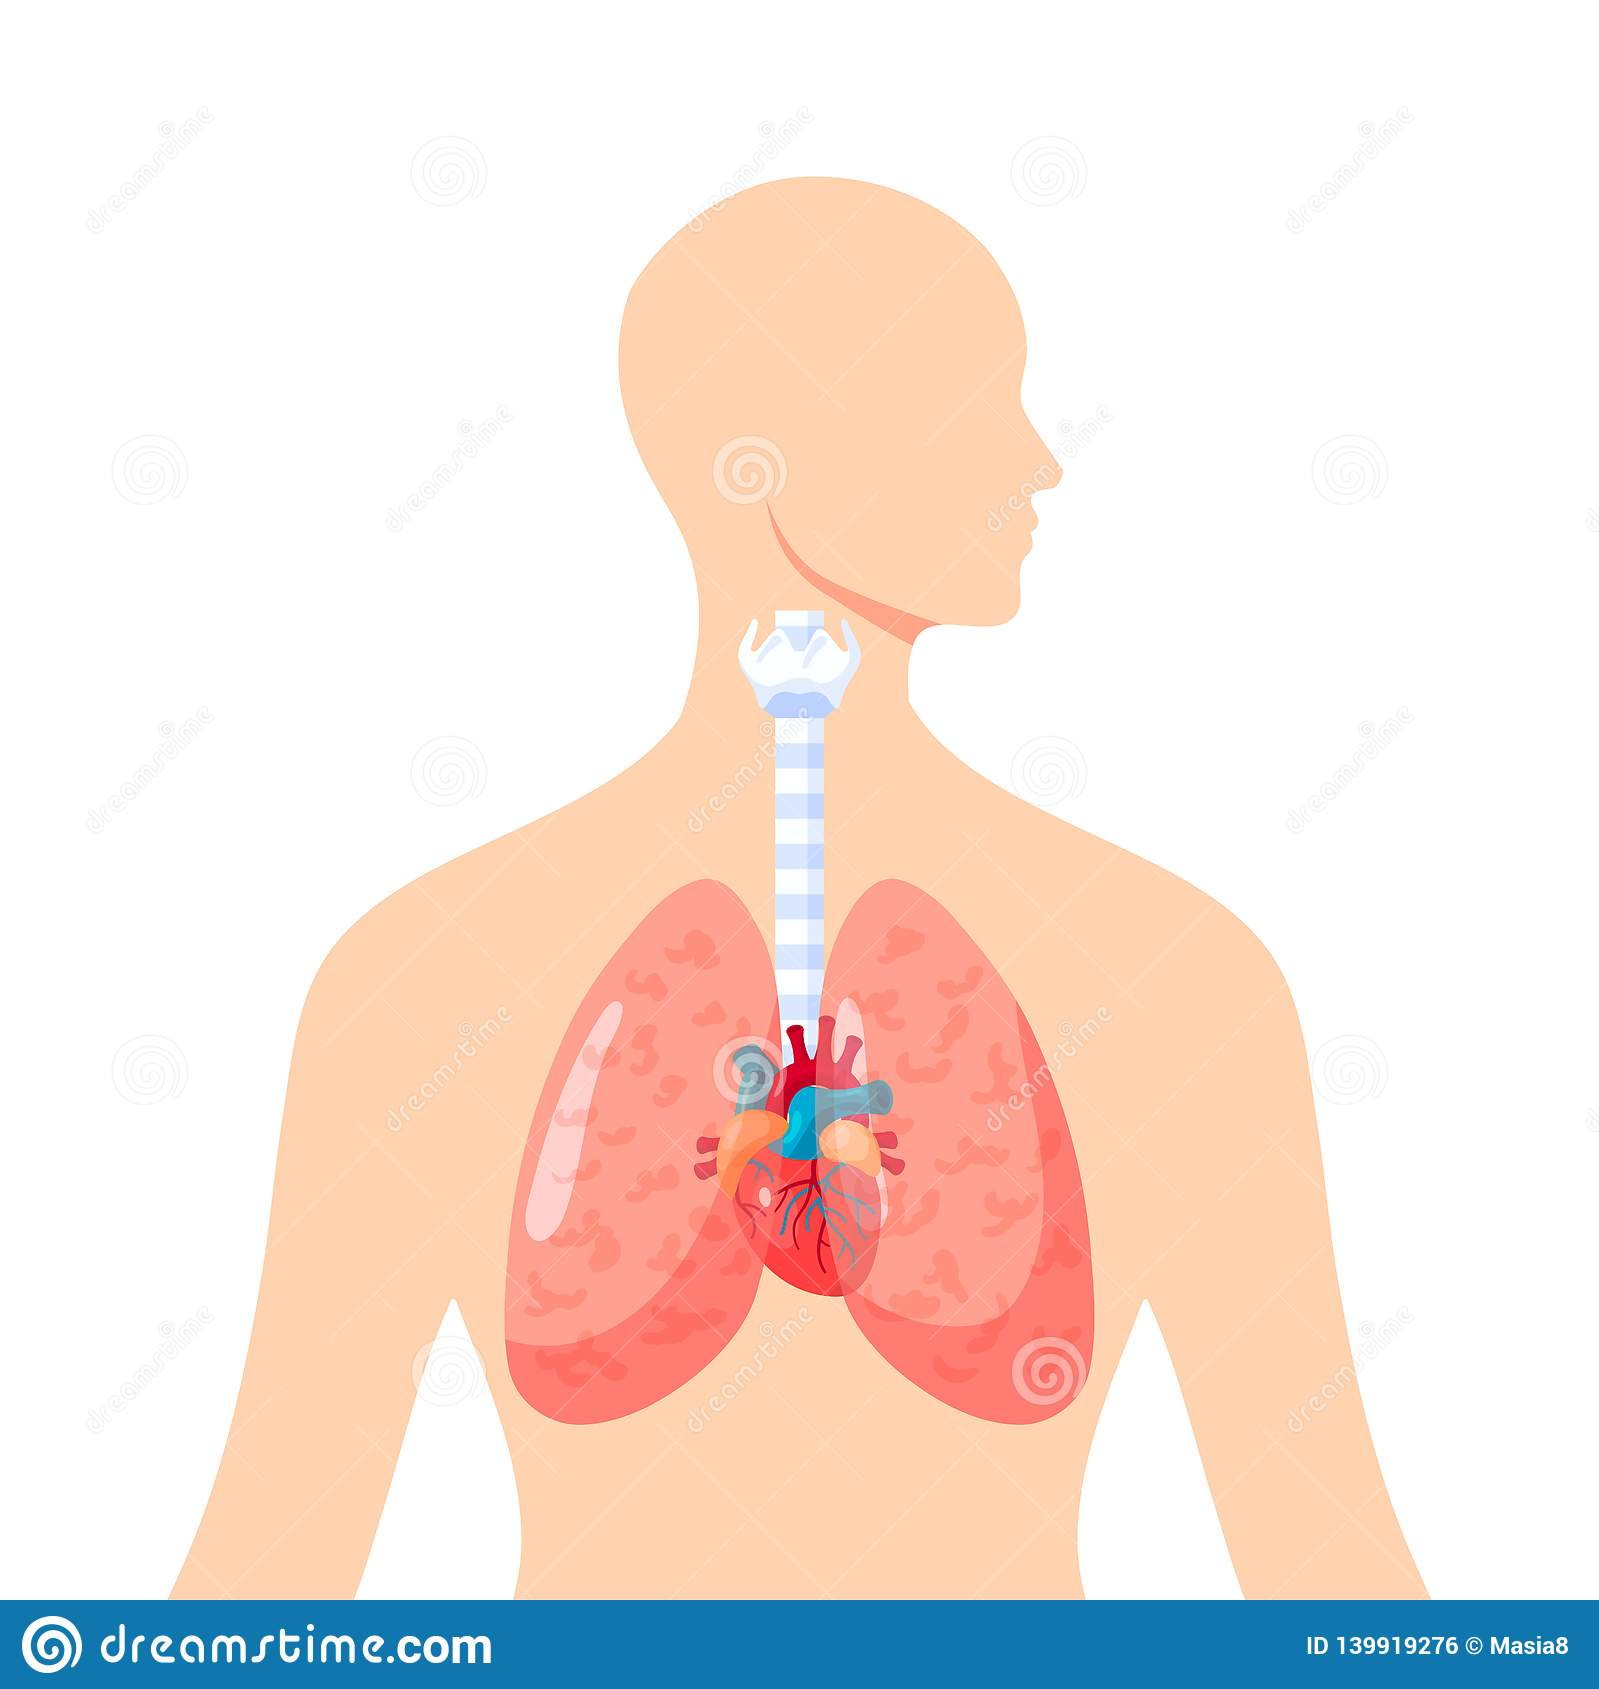 human lungs vector icon in flat style stock vector illustration of internal graphic 139919276 https www dreamstime com human lungs vector icon flat style inside female body illustration medical atlases articles educational textbooks etc image139919276